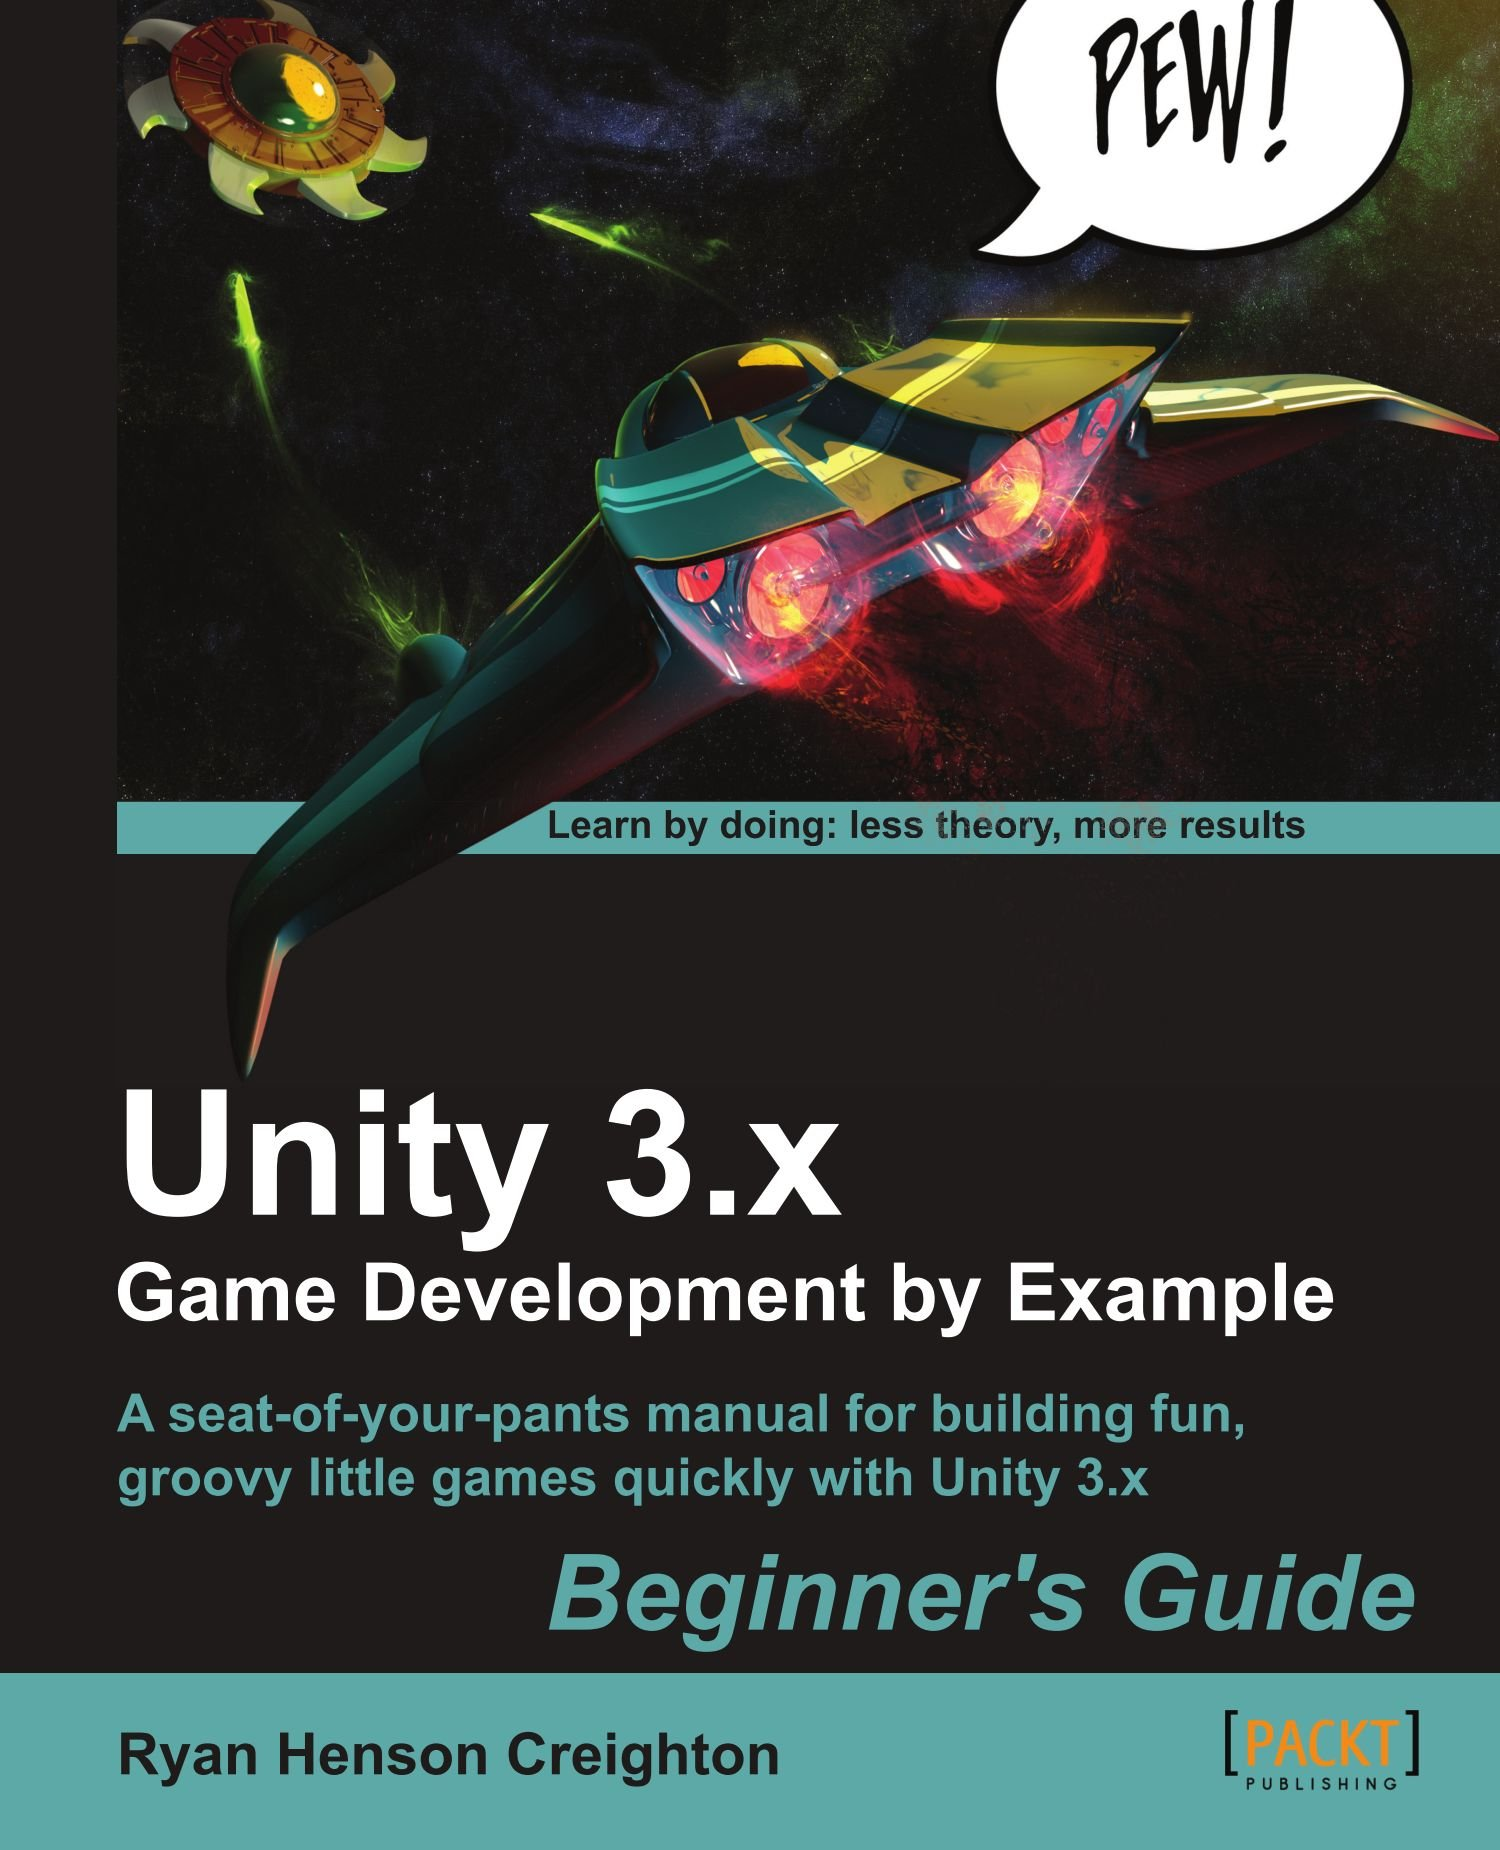 Download Unity 3.x Game Development by Example Beginner's Guide pdf